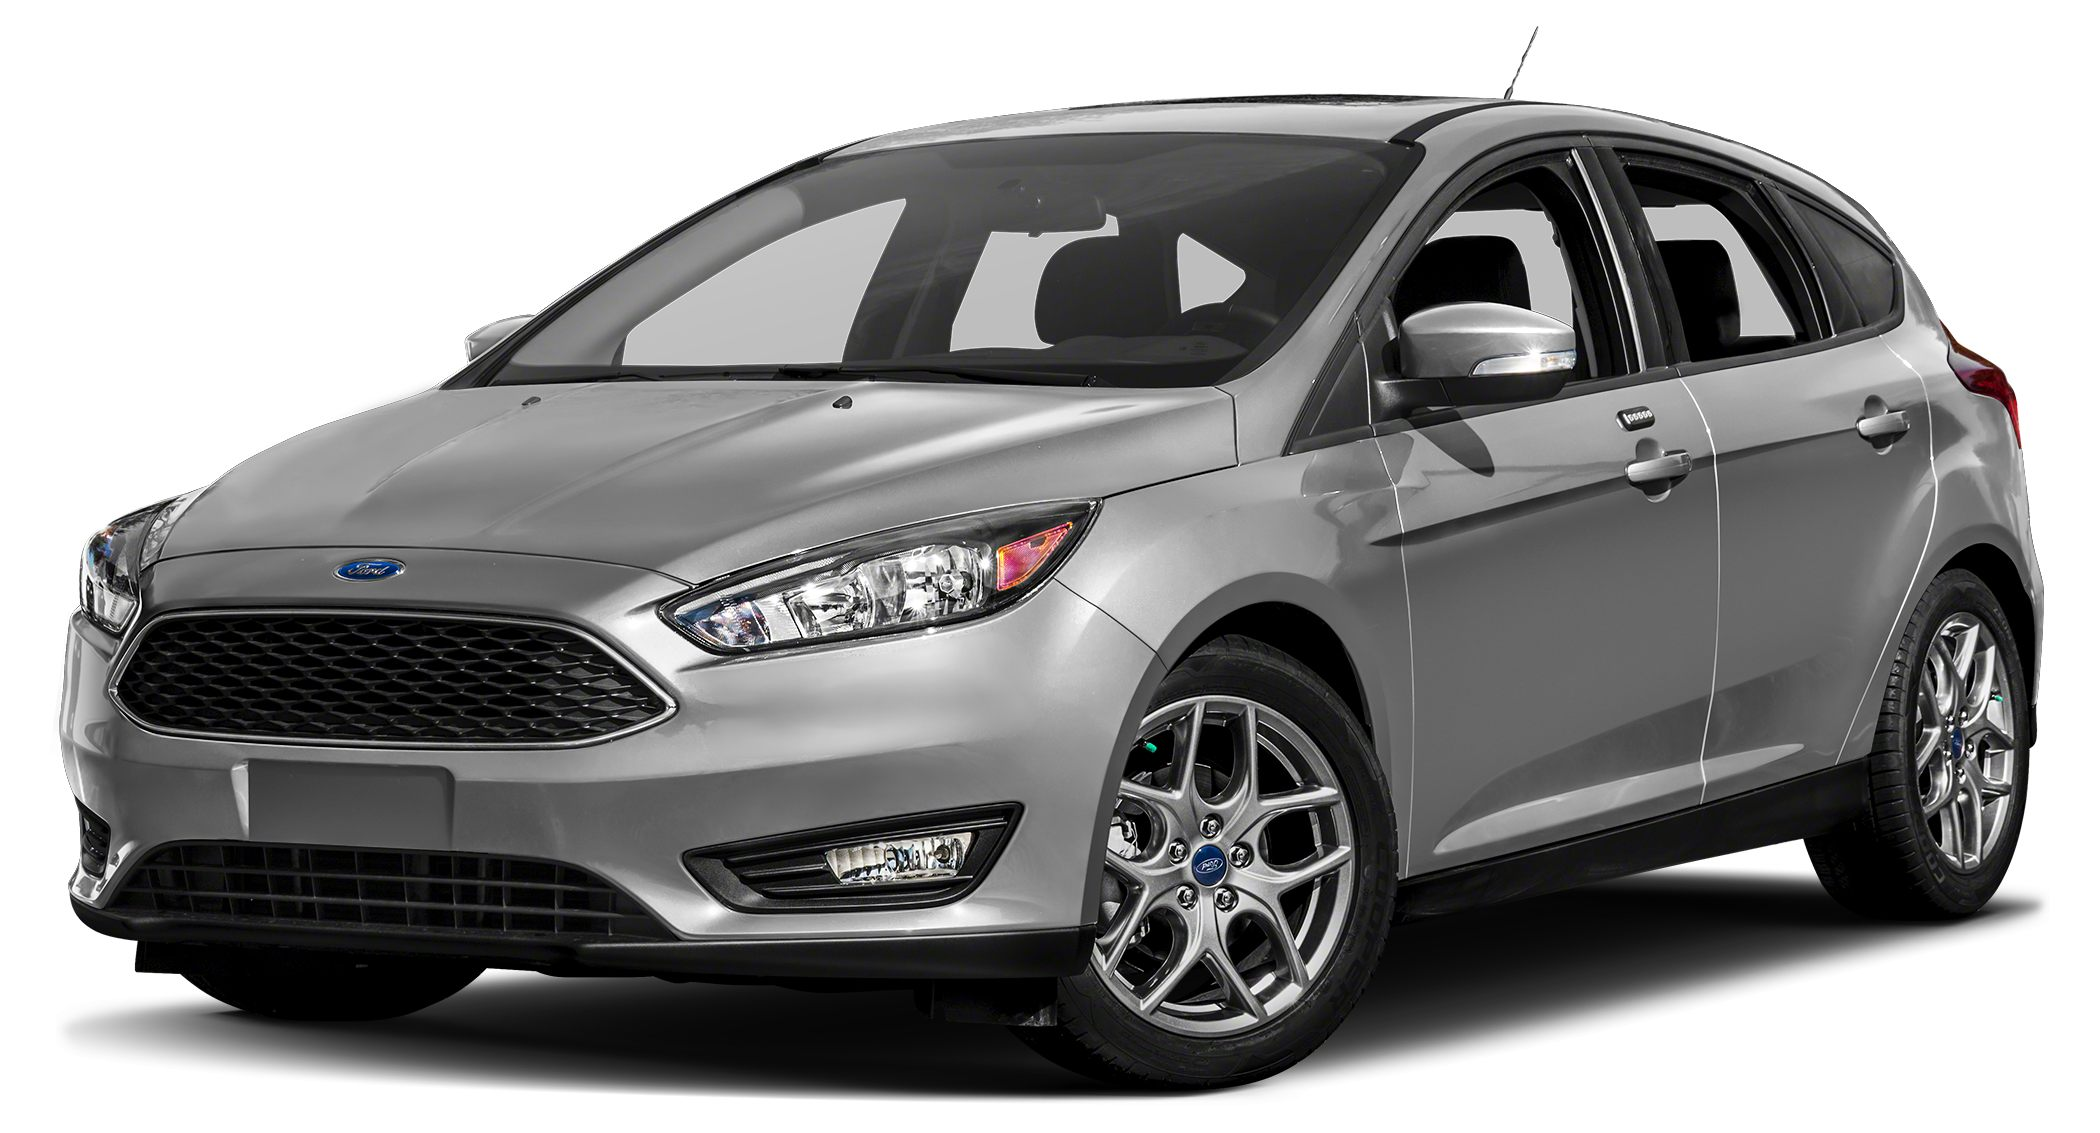 2016 Ford Focus SE AUTOCHECK 1 OWNER Ford Certified Pre-Owned 7 YEAR 100000 MILE FORD